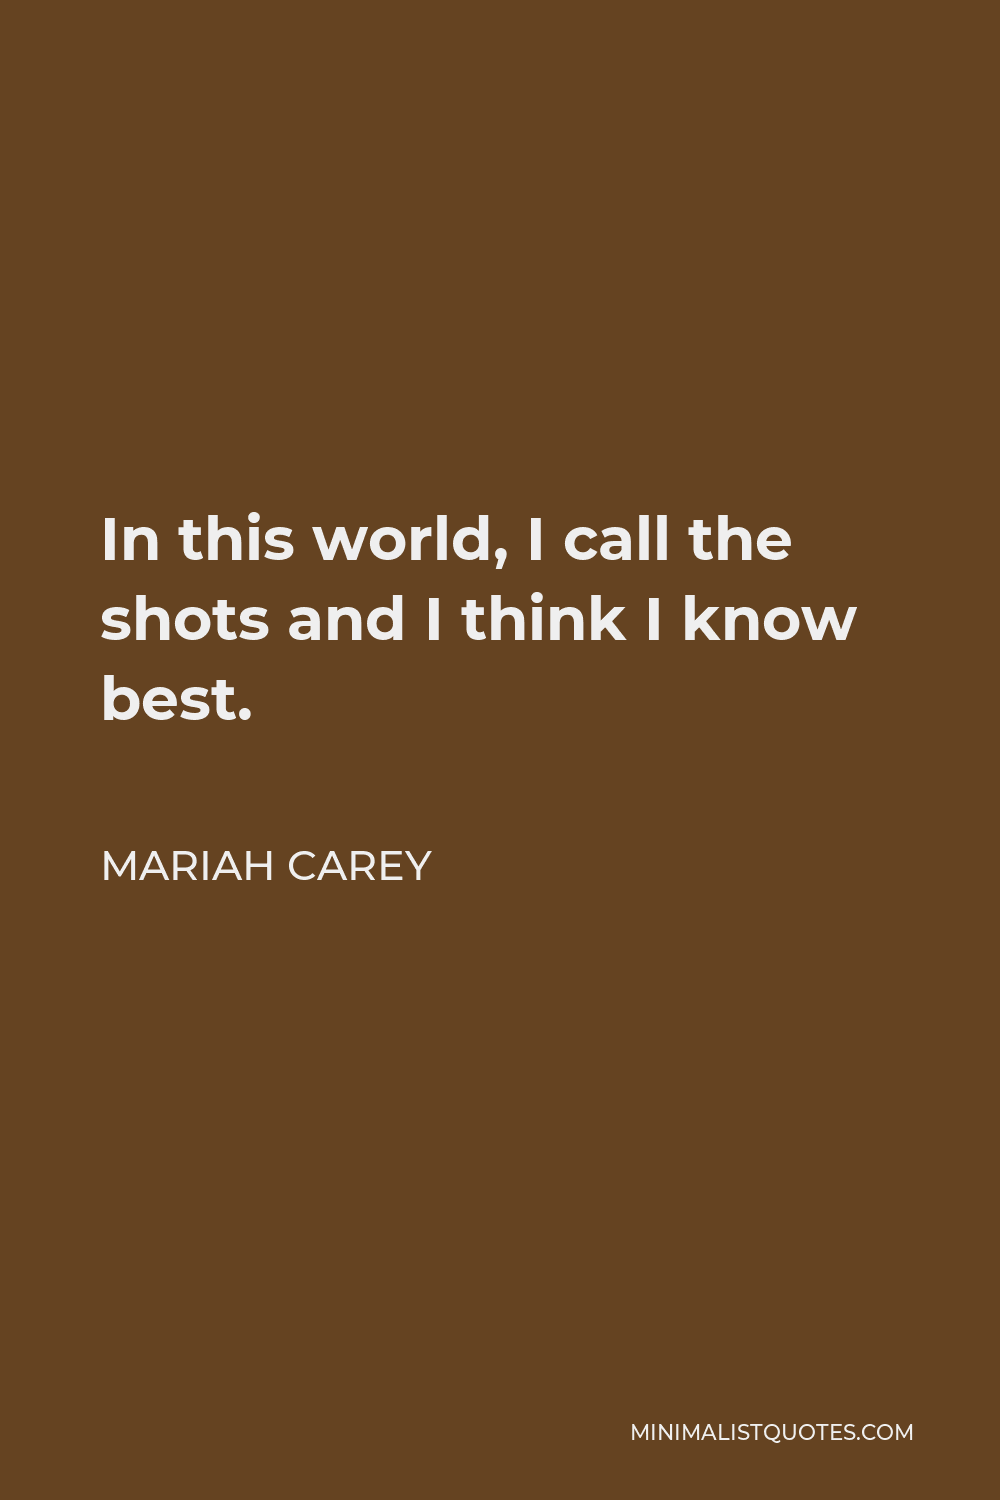 Mariah Carey Quote - In this world, I call the shots and I think I know best.